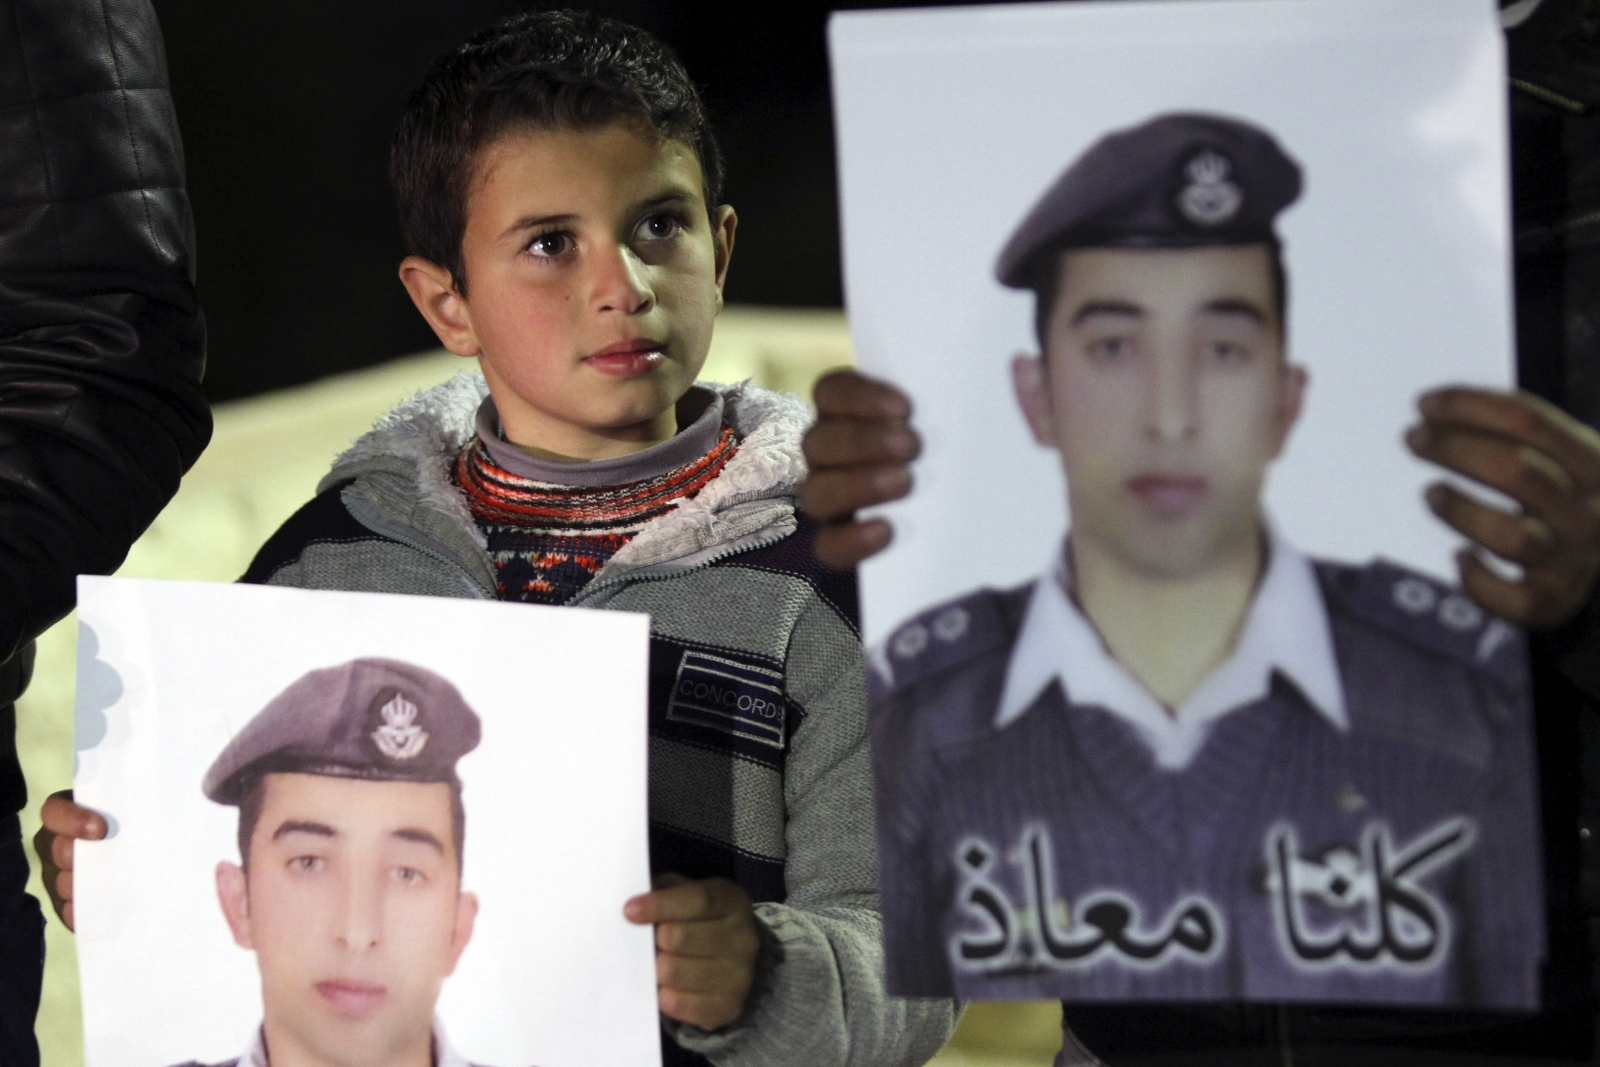 A relative holds a picture of Jordanian pilot Muath al-Kasaesbeh, who was captured by Islamic State after his plane crashed in Syria